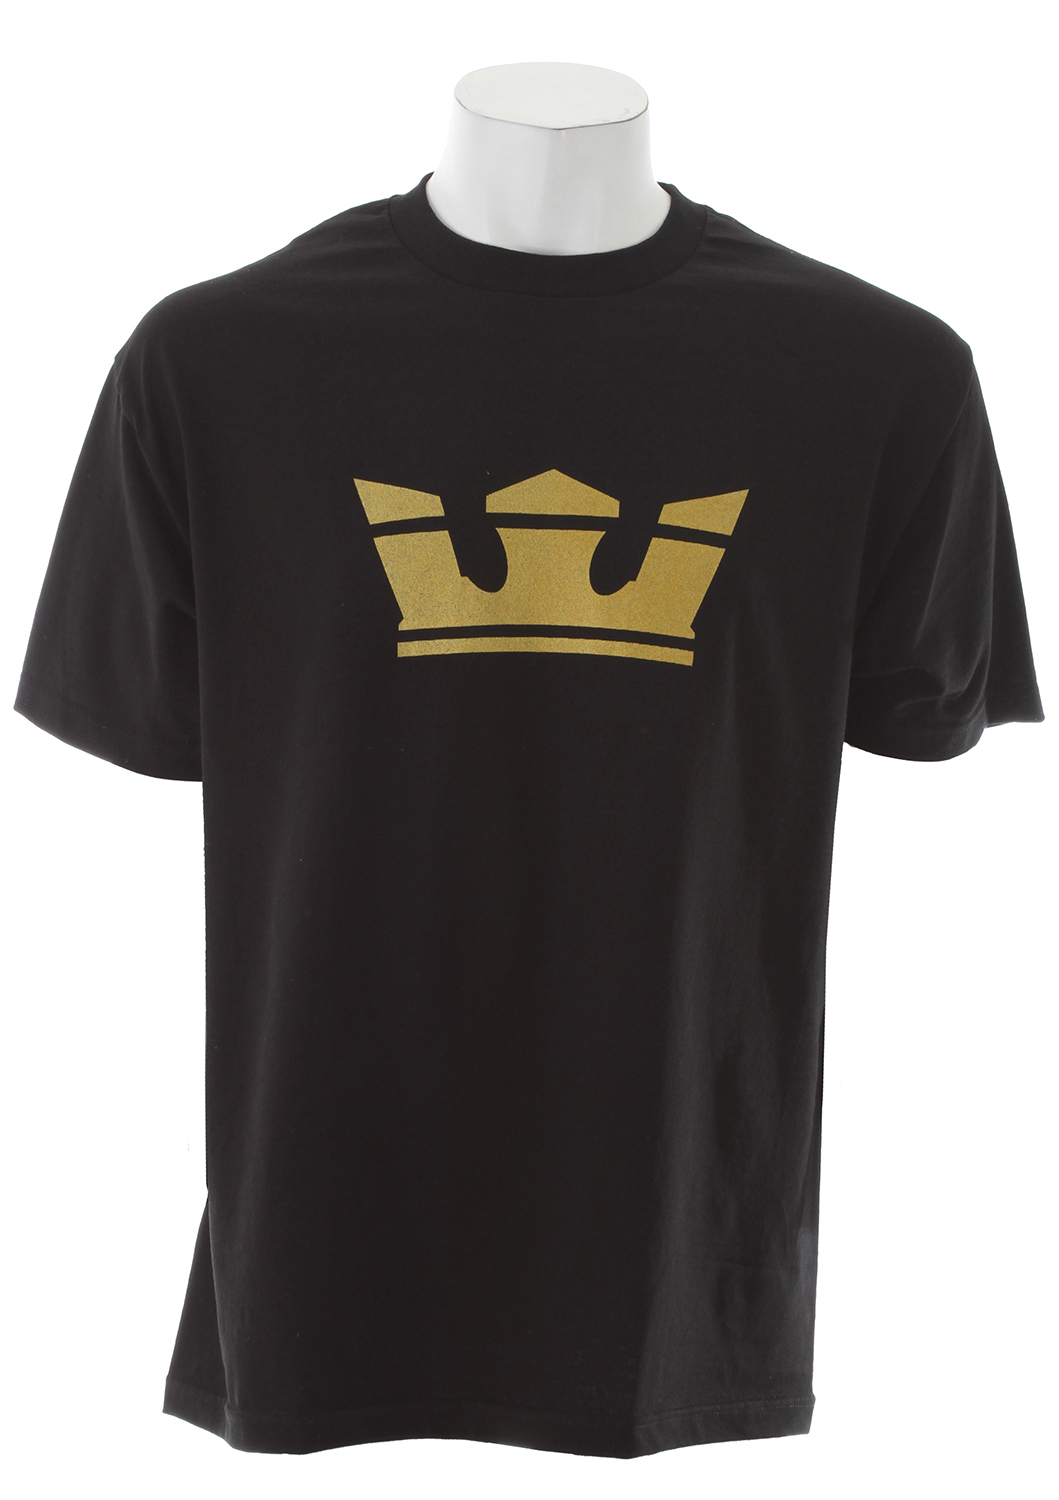 The Supra Icon Shirt is made for kings, not jesters. - $19.95